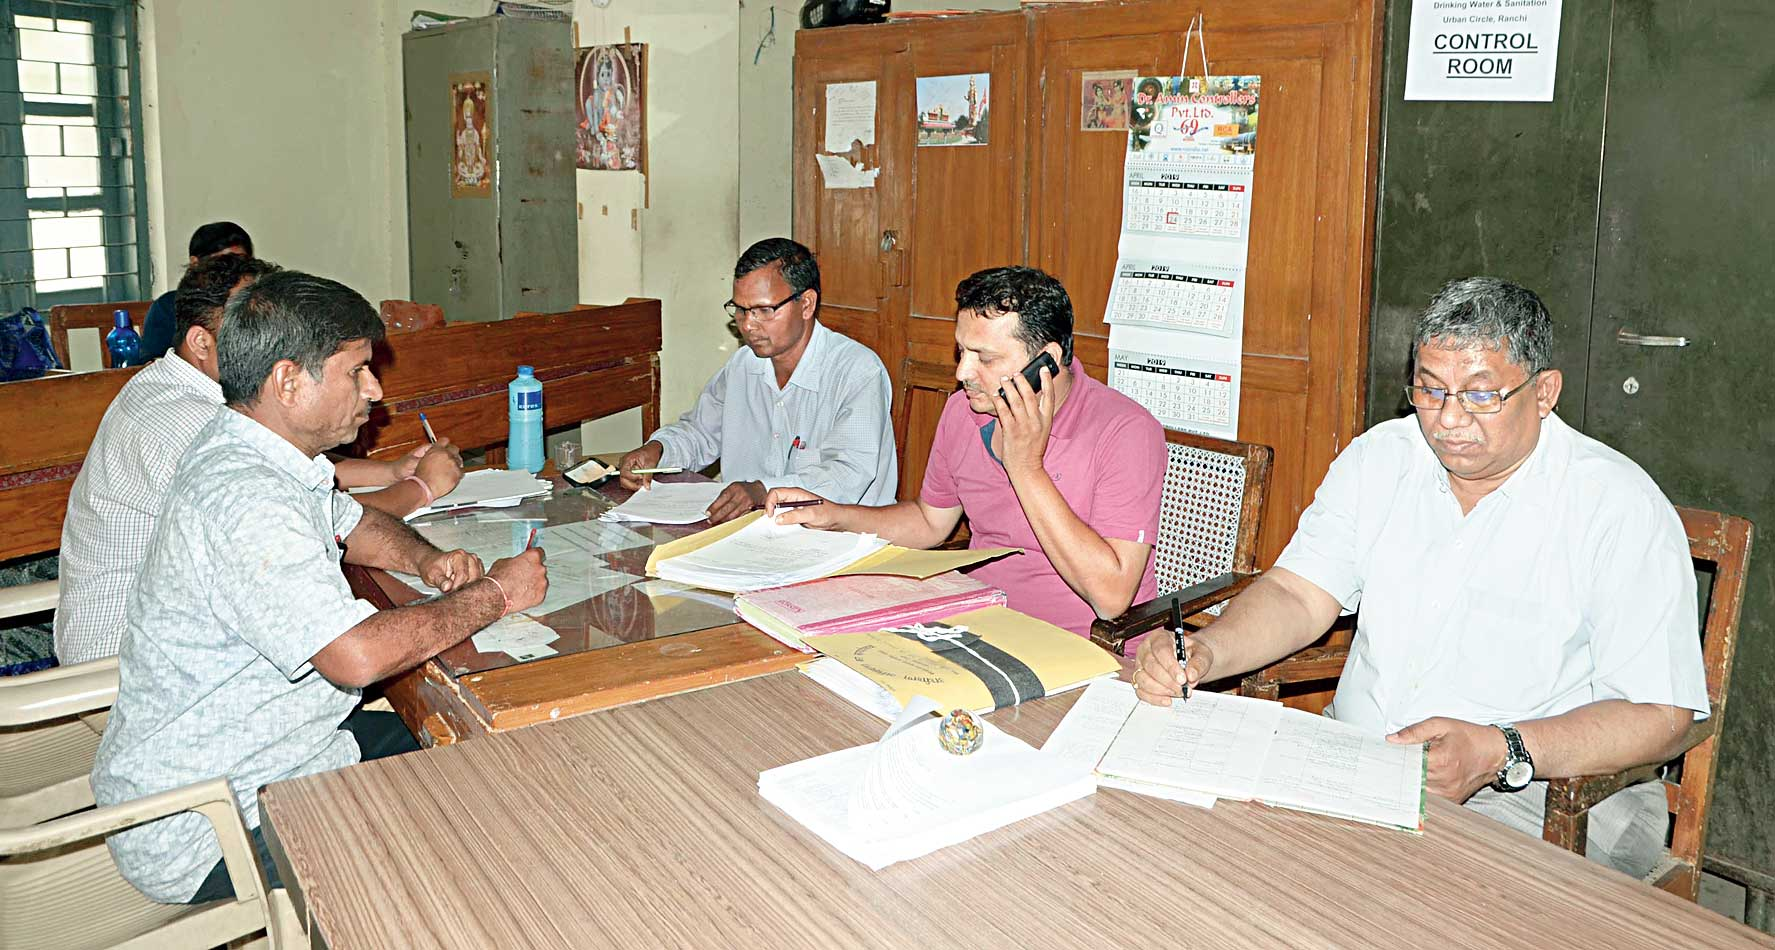 Staff of drinking water and sanitation department at the control room in Ranchi on Saturday.